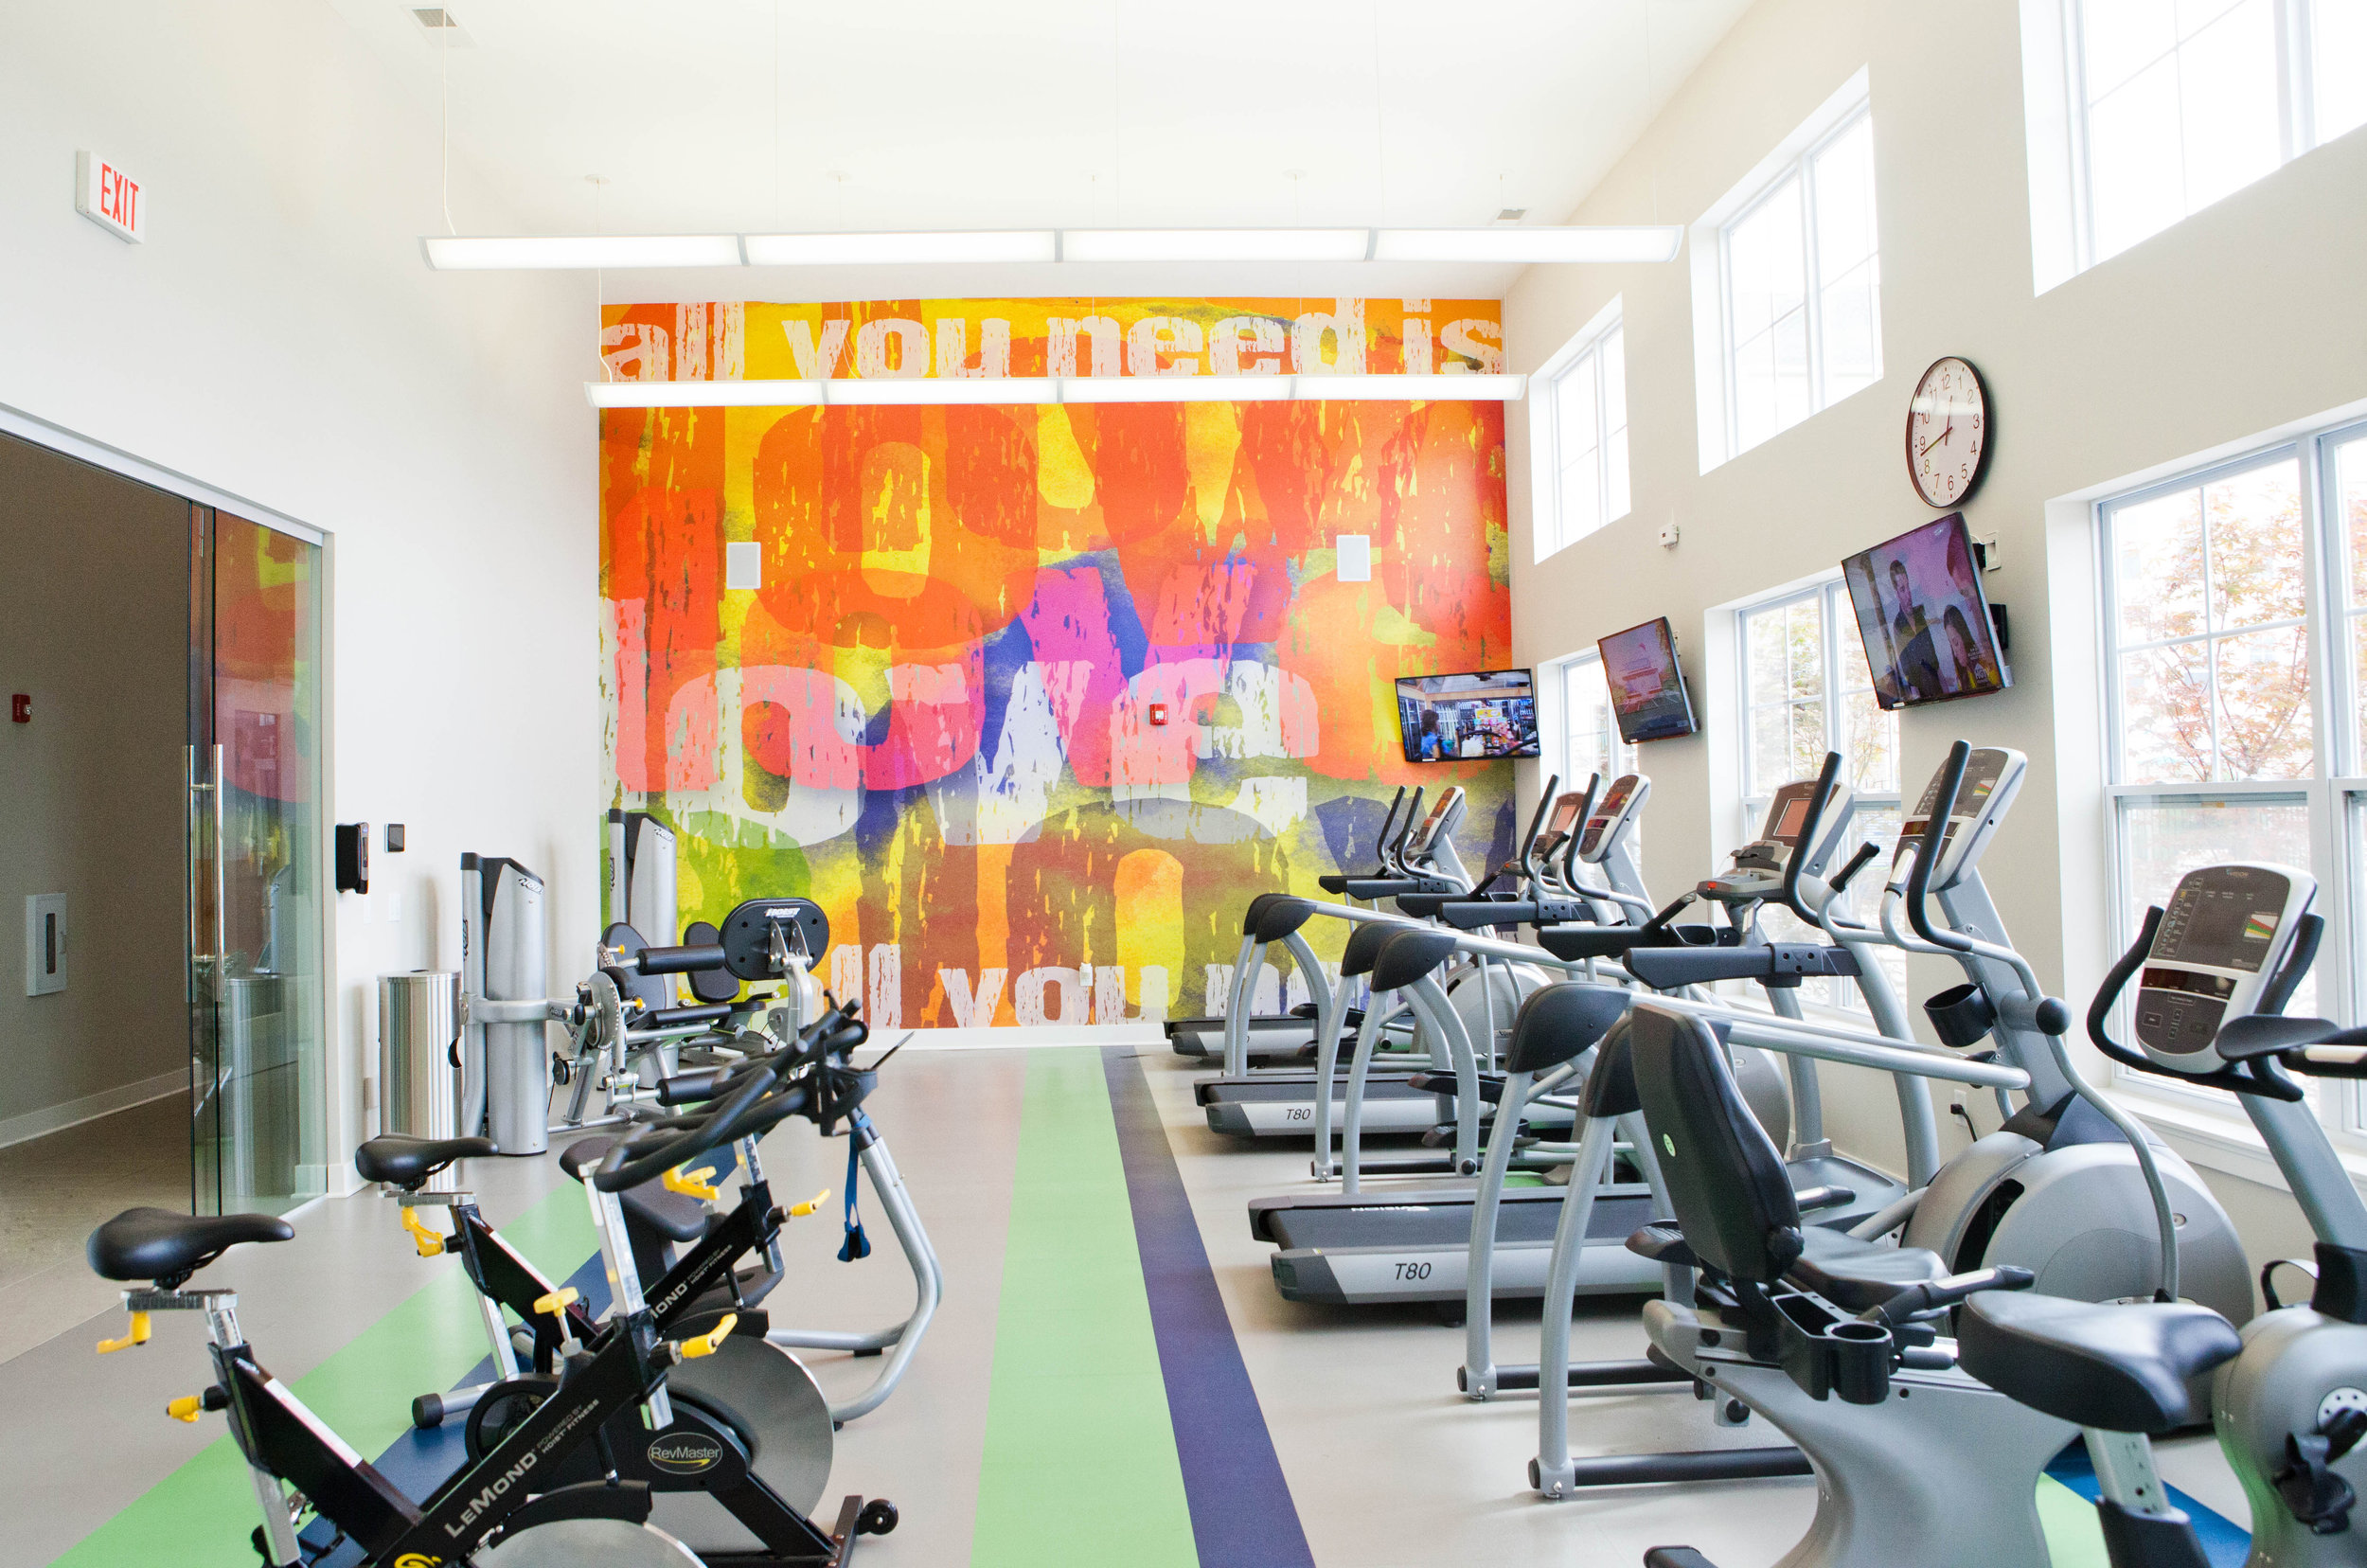 Lakeside - workout facility 1 (amenities).JPG